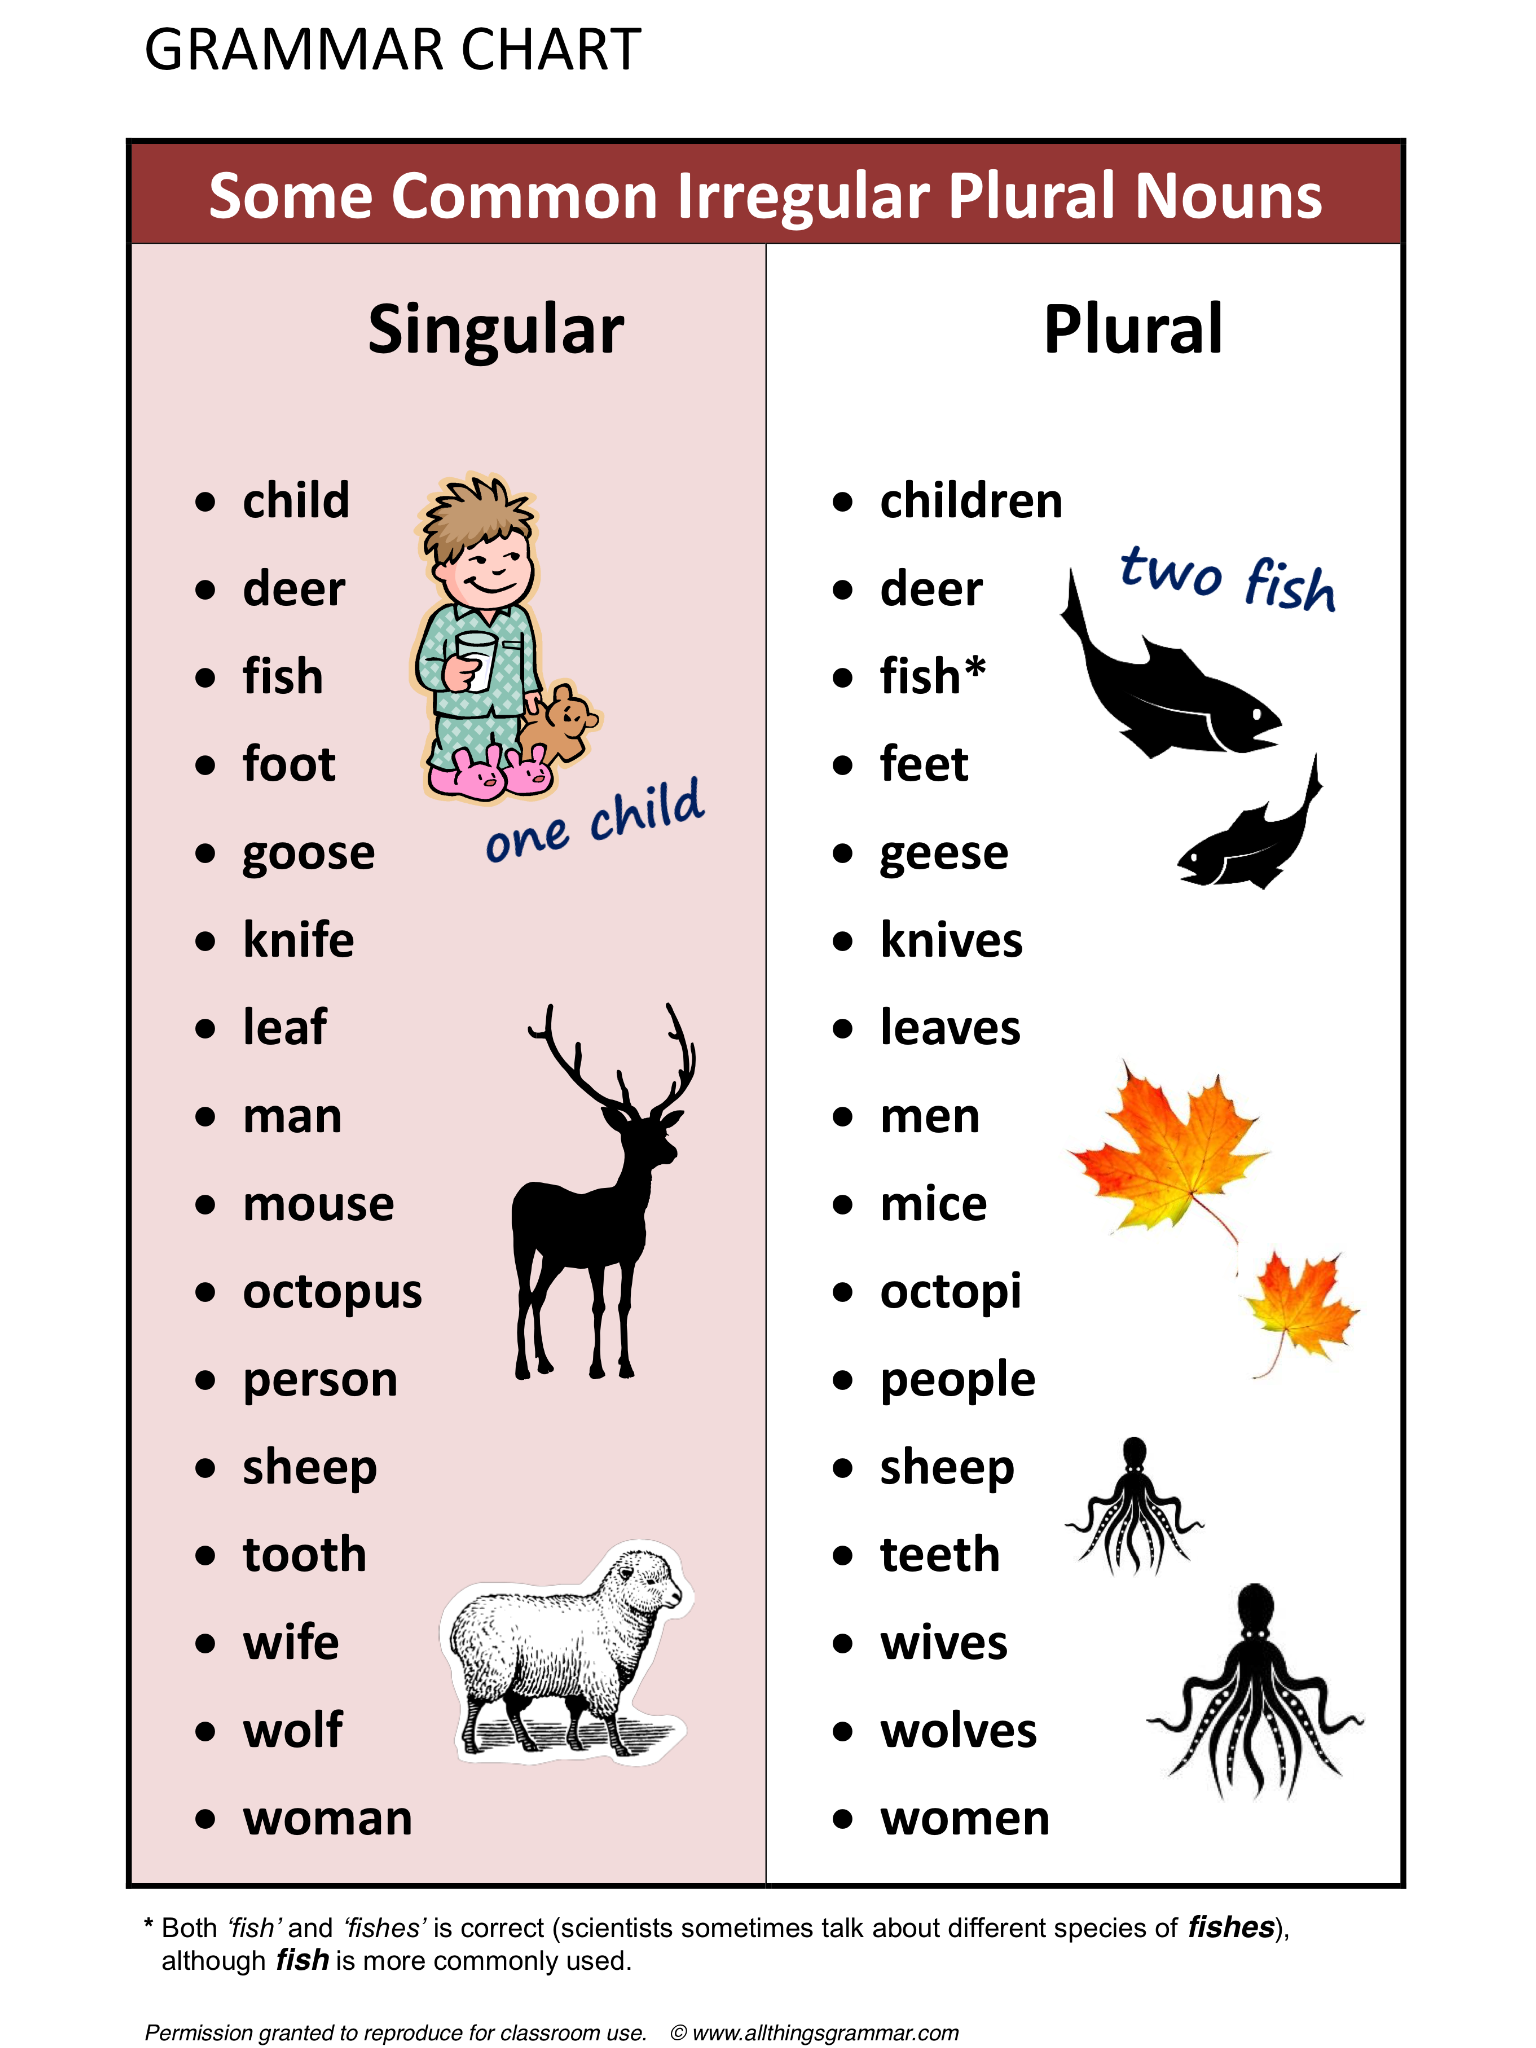 Free Printable Halloween Worksheets Excel English Grammar Some Common Irregular Plural Nouns Www  Easy Writing Worksheets Word with Scatter Plot Worksheets For Middle School Excel English Grammar Some Common Irregular Plural Nouns Wwwallthingsgrammarcom Plural Time Worksheets Grade 3 Word